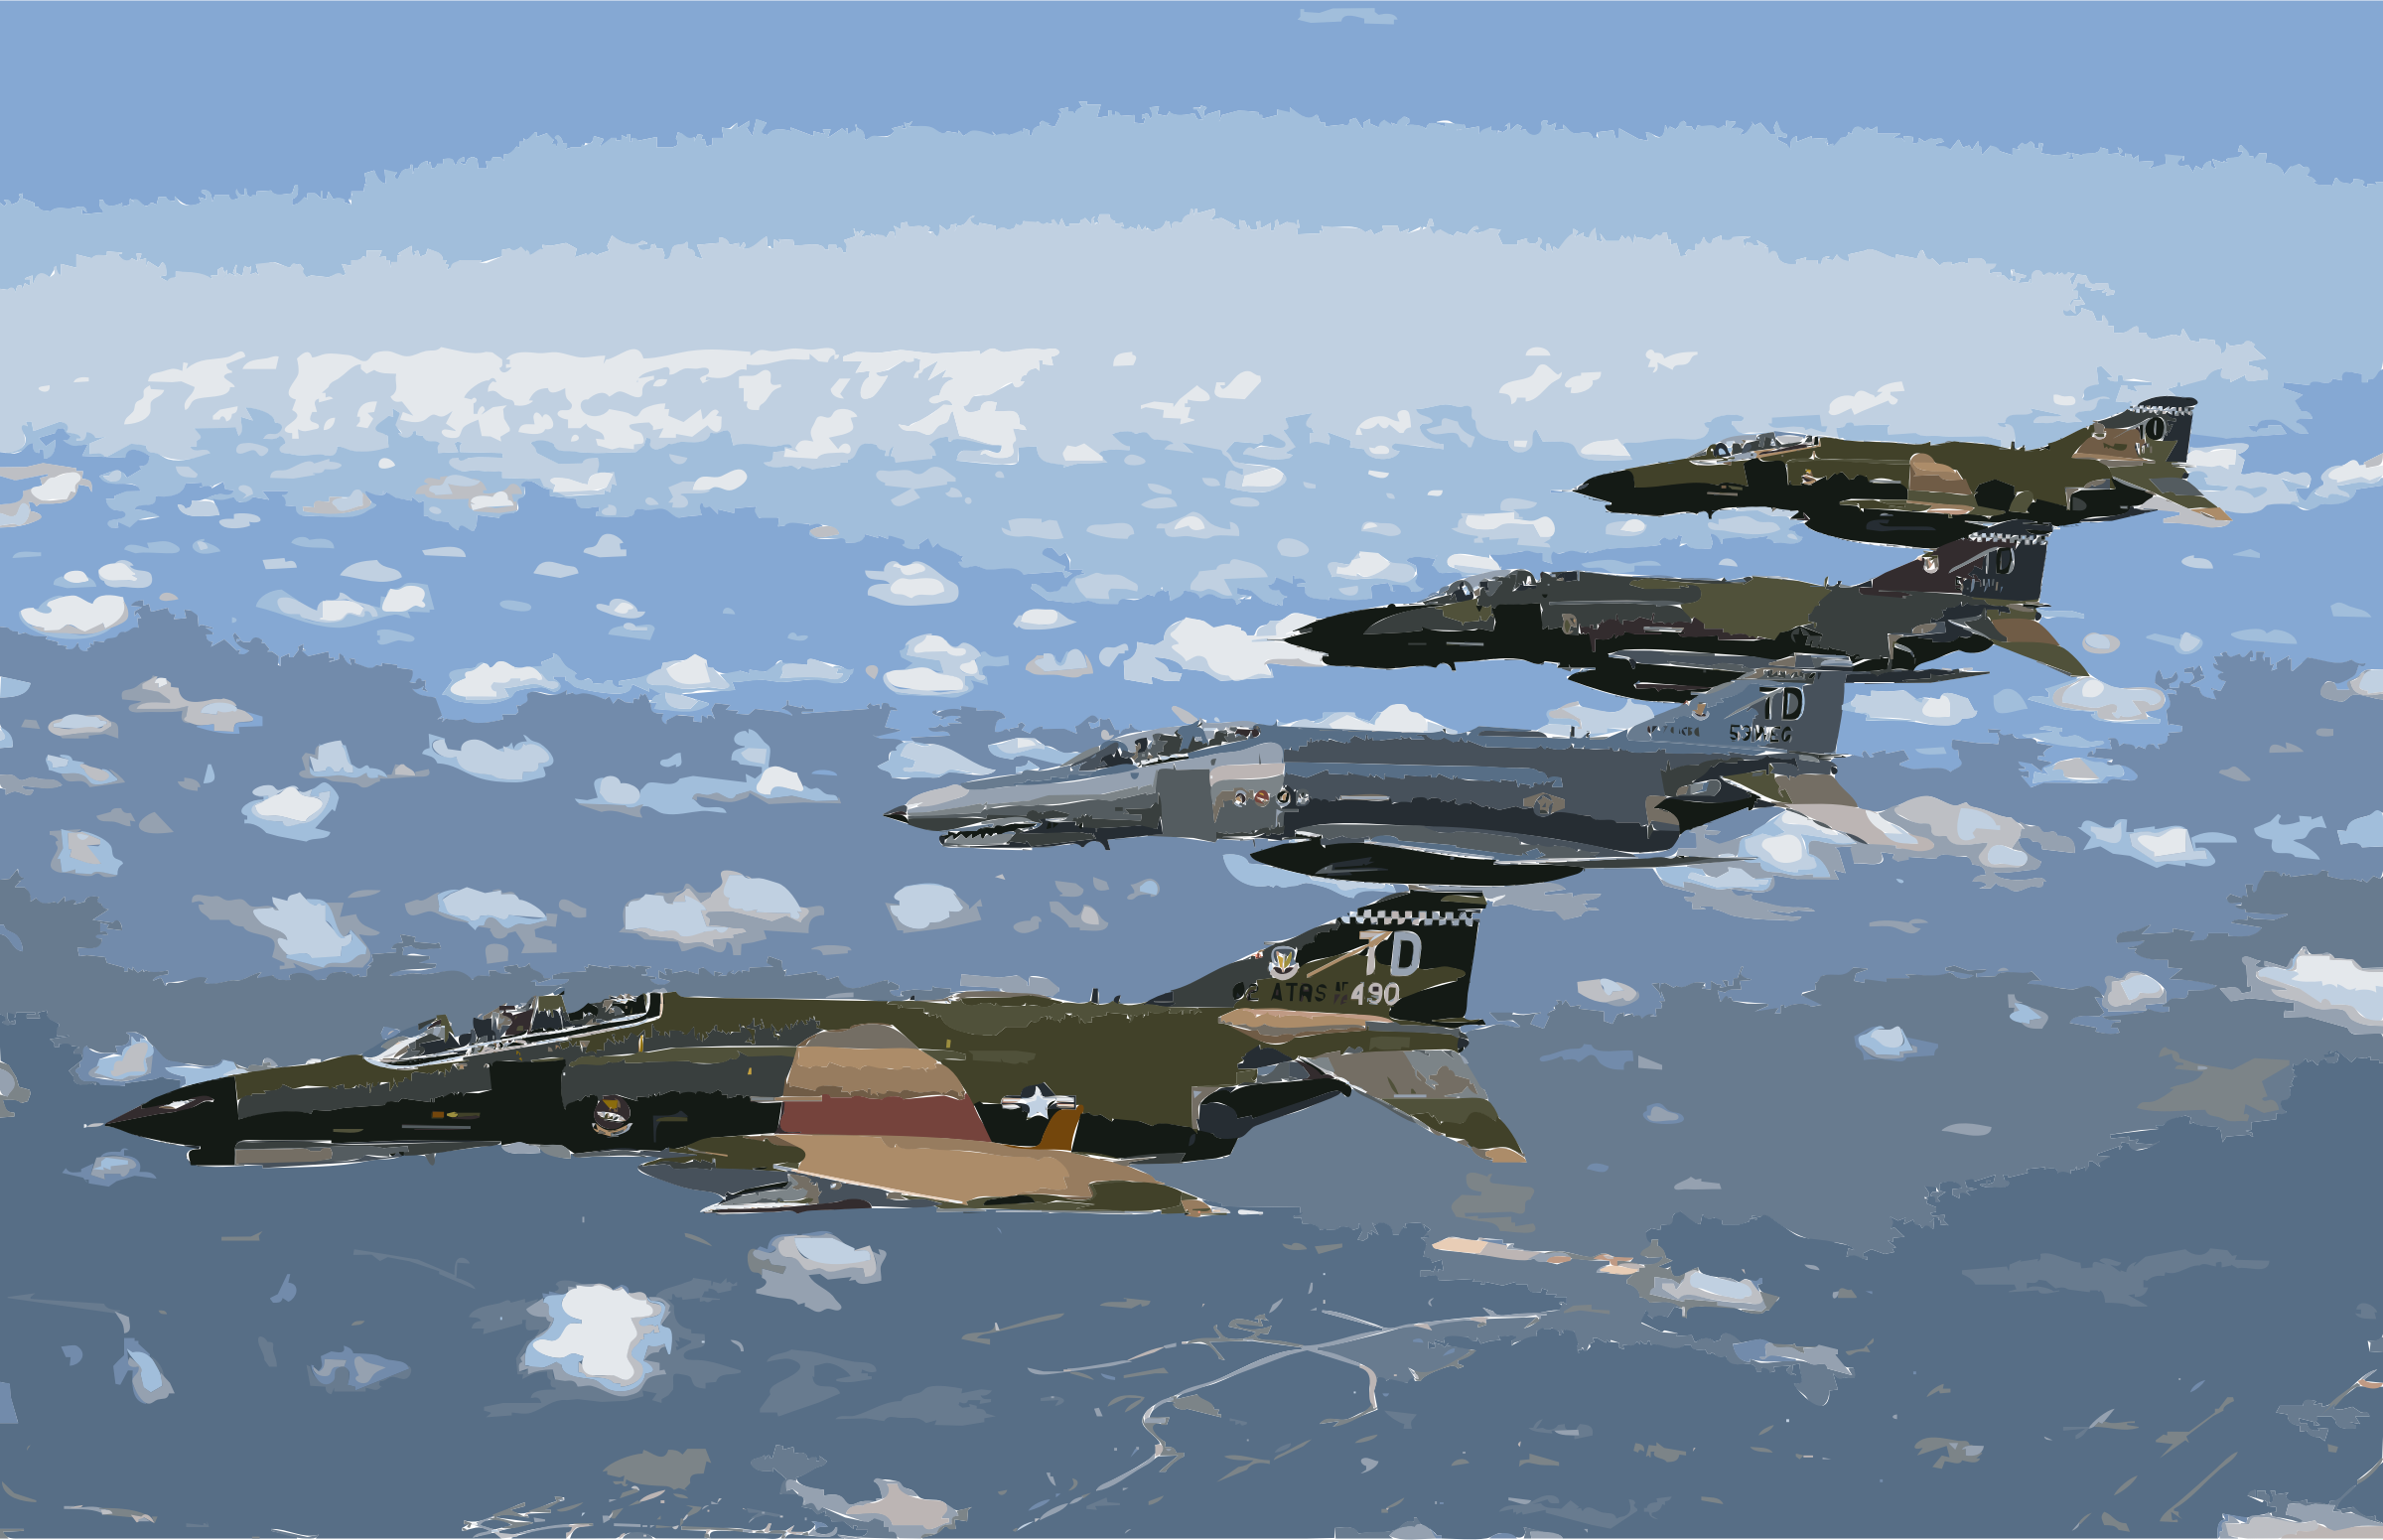 1997 F-4 Heritage Flight over Florida-edit 1 by 3w7y6e+cf5zo76jvomsg